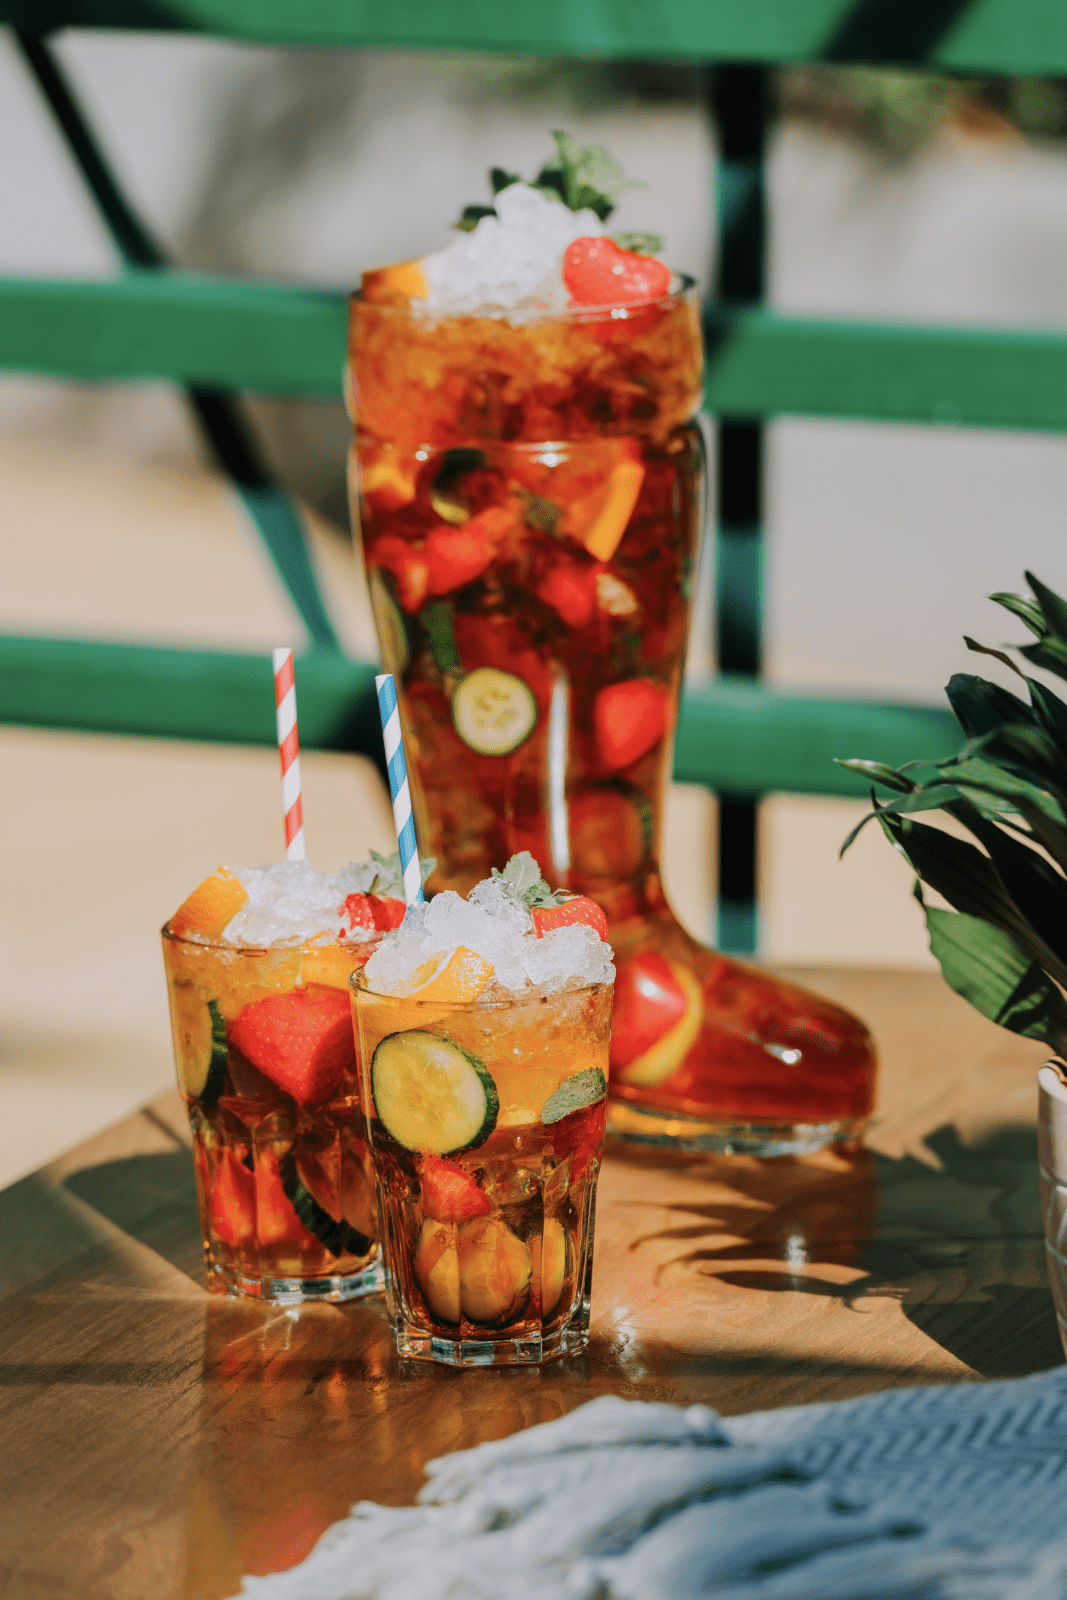 The Lawn Club in Manchester reveals giant welly boot Pimms drink, The Manc